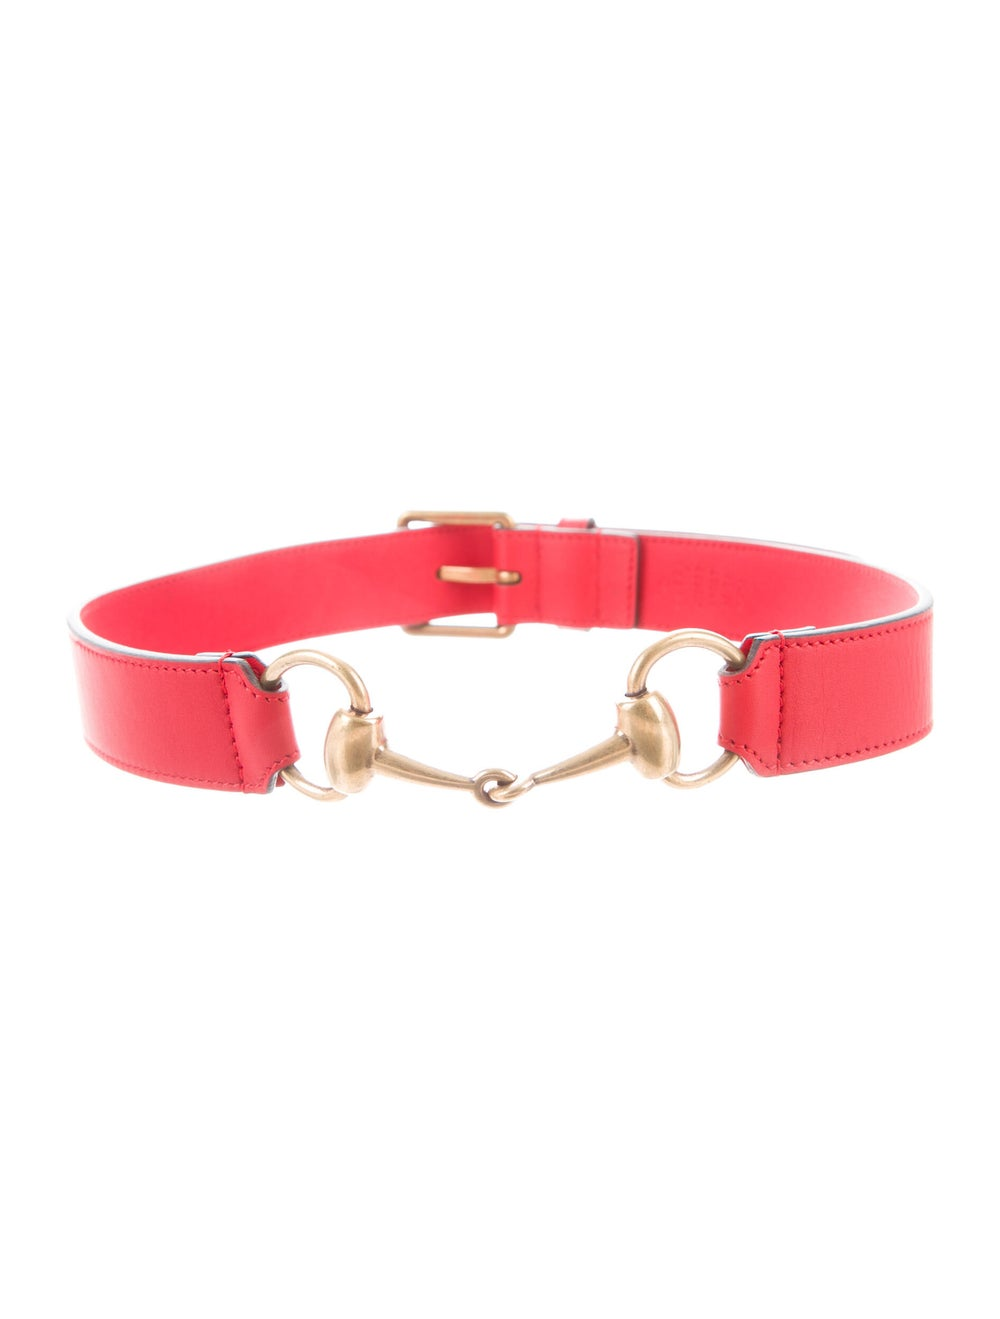 Gucci Horsebit Accent Leather Belt Red - image 2